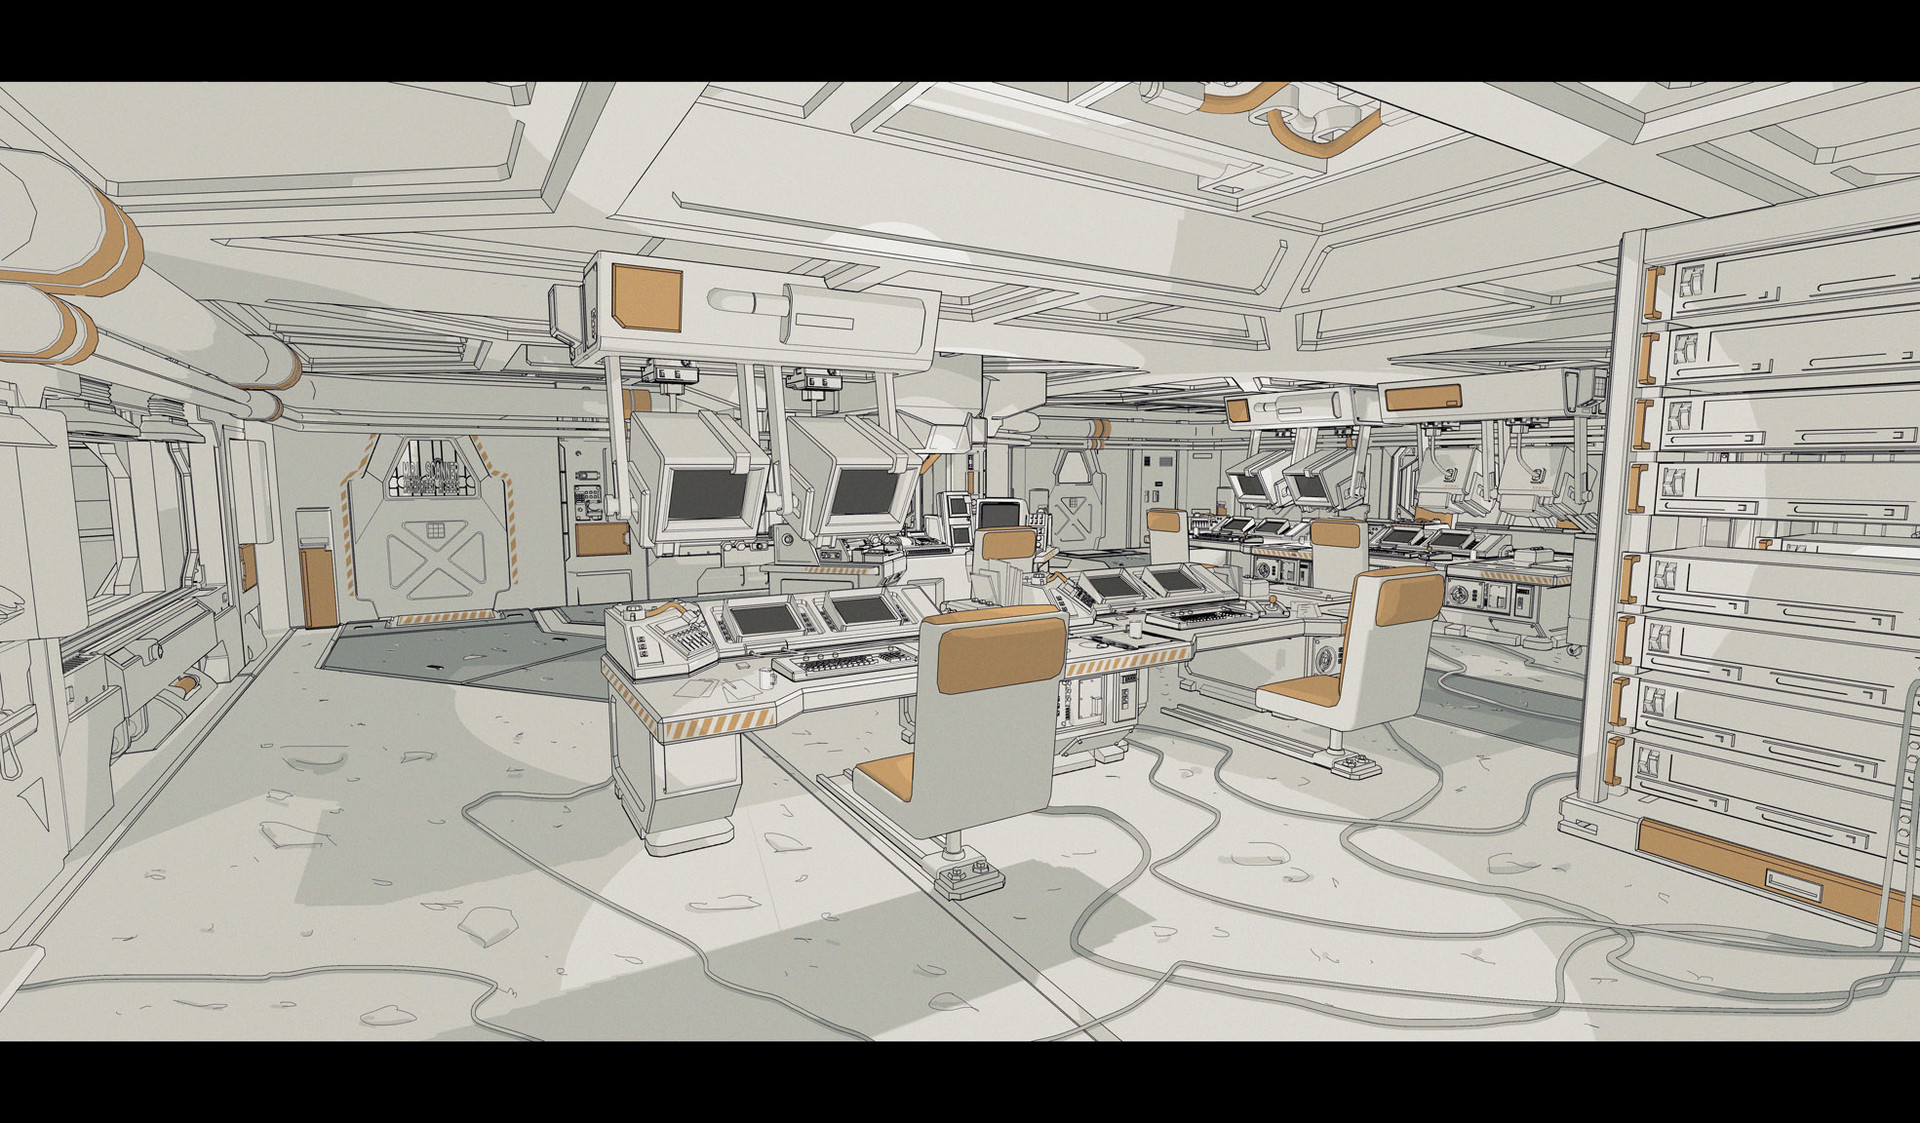 Brx wright android mission control room mri 02